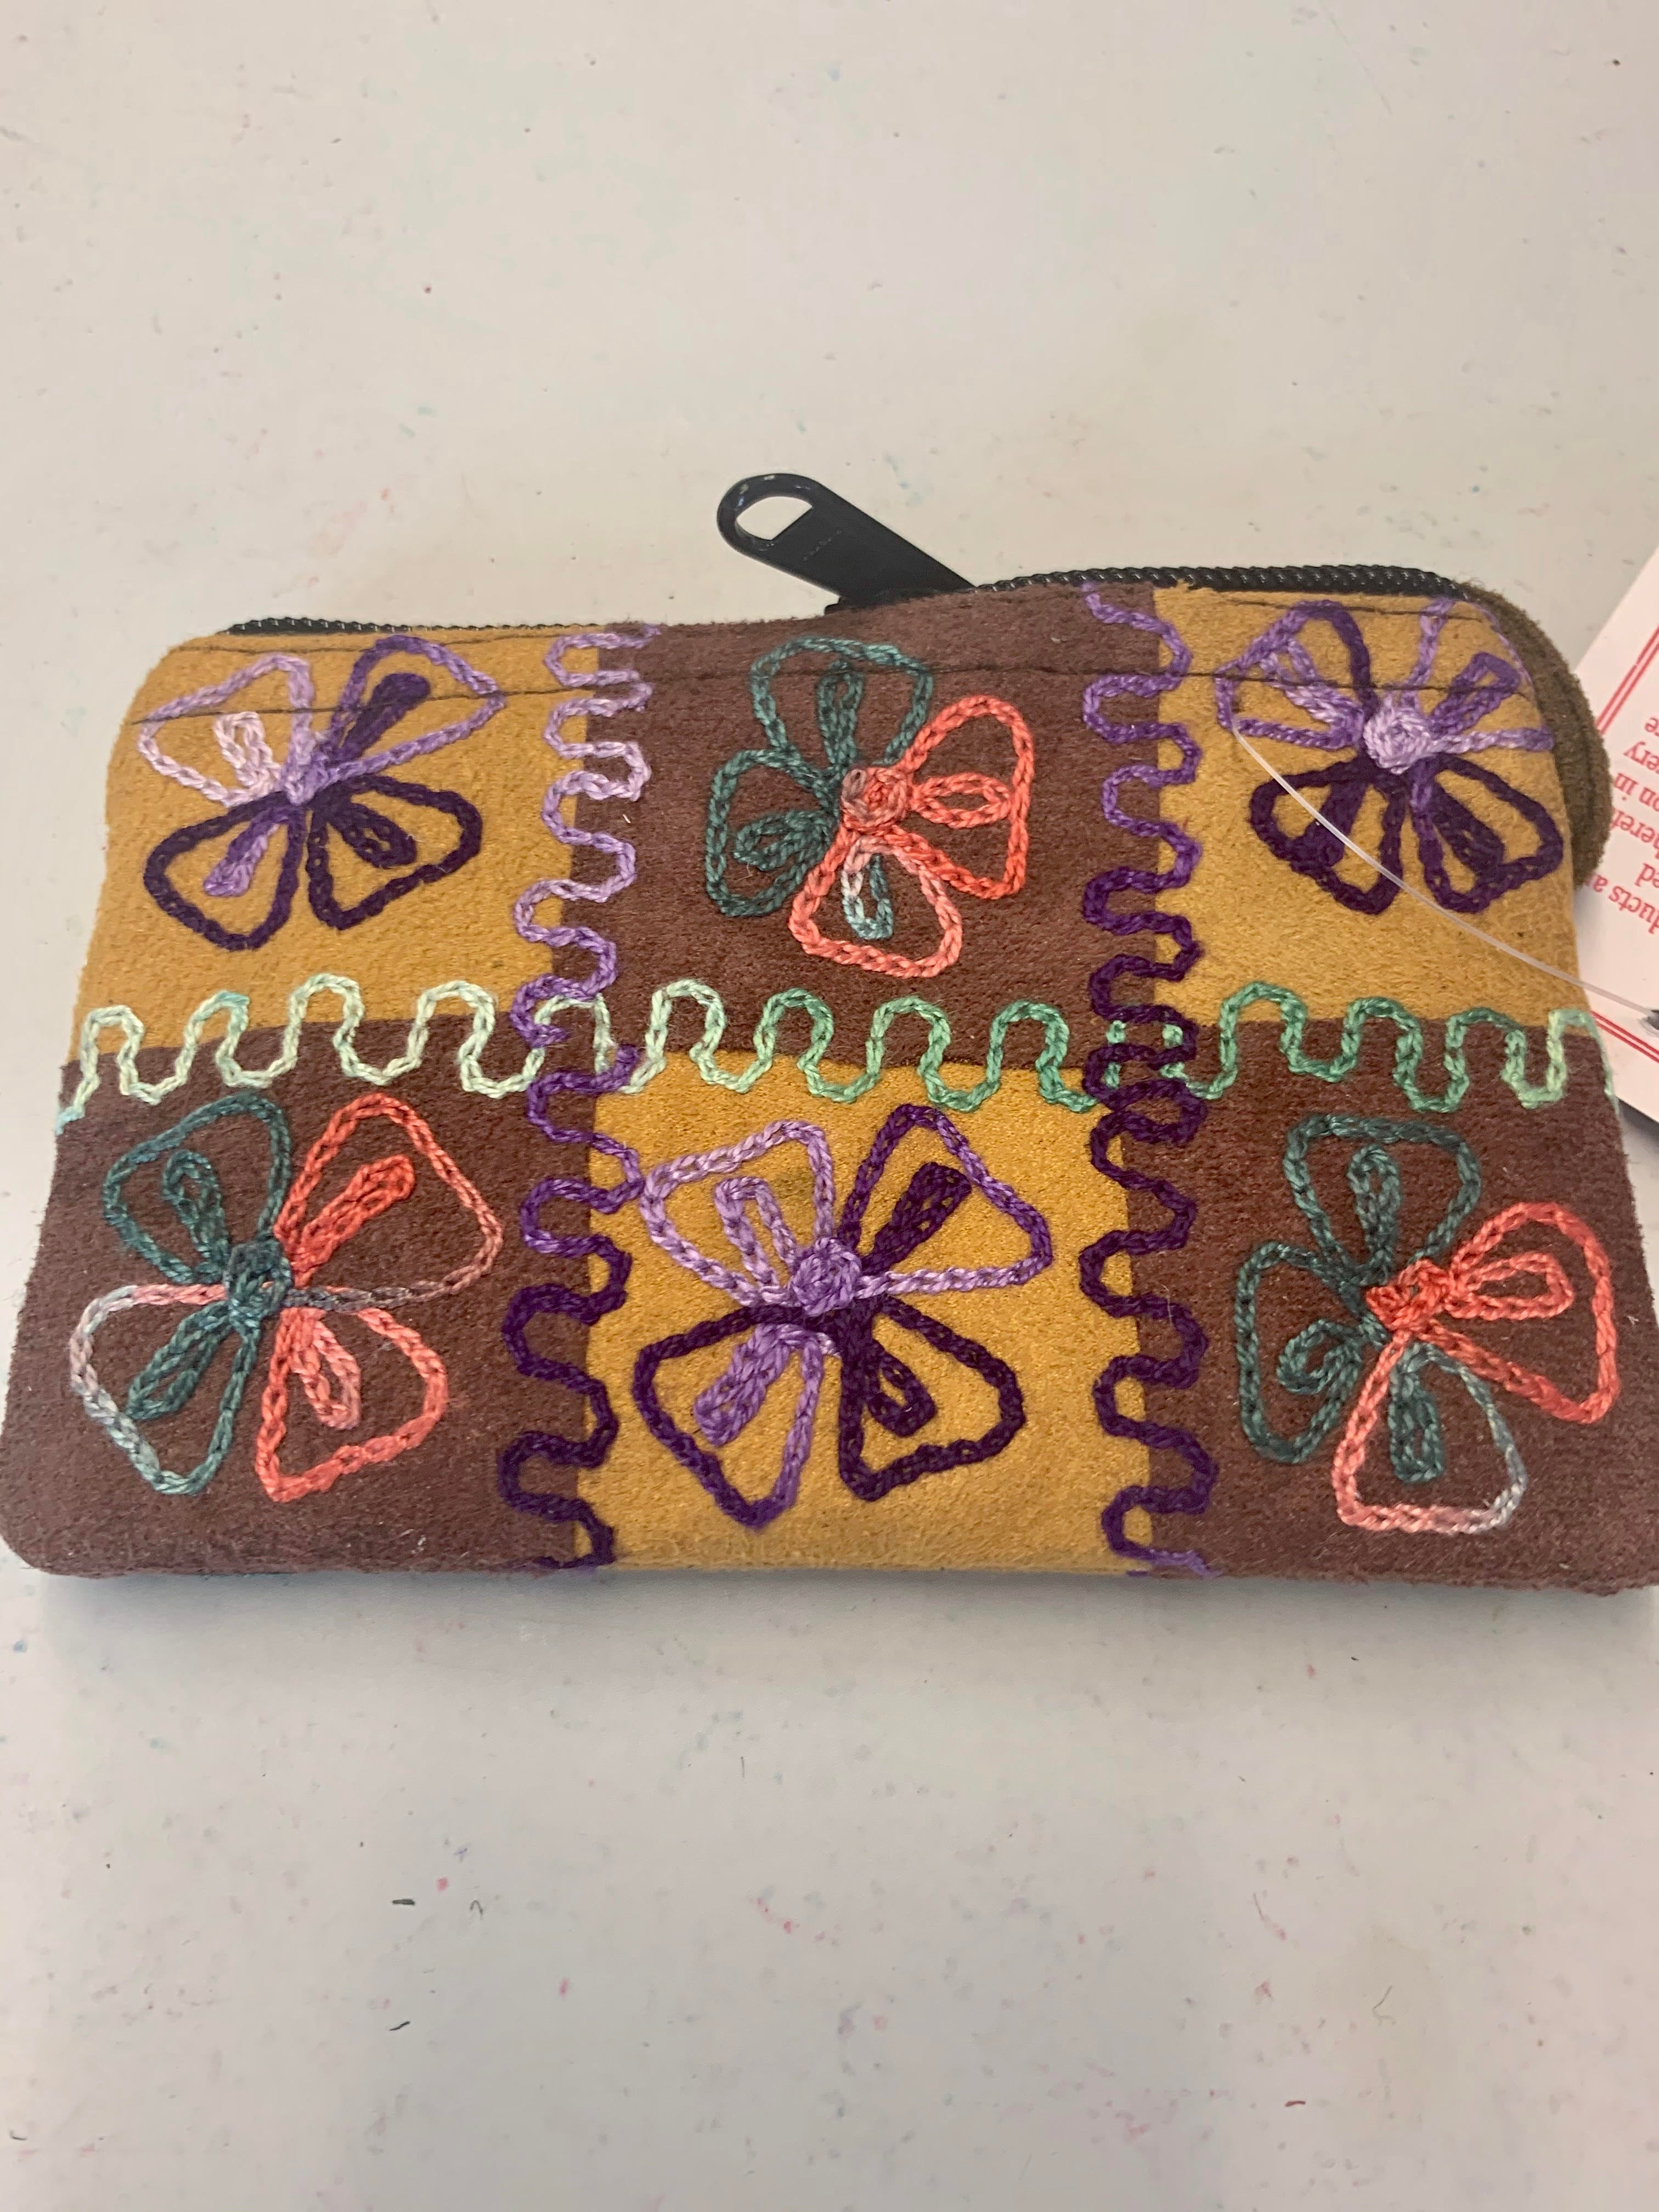 Hand-stitched Suede Coin Purse w/Embroidery - Made in Nepal